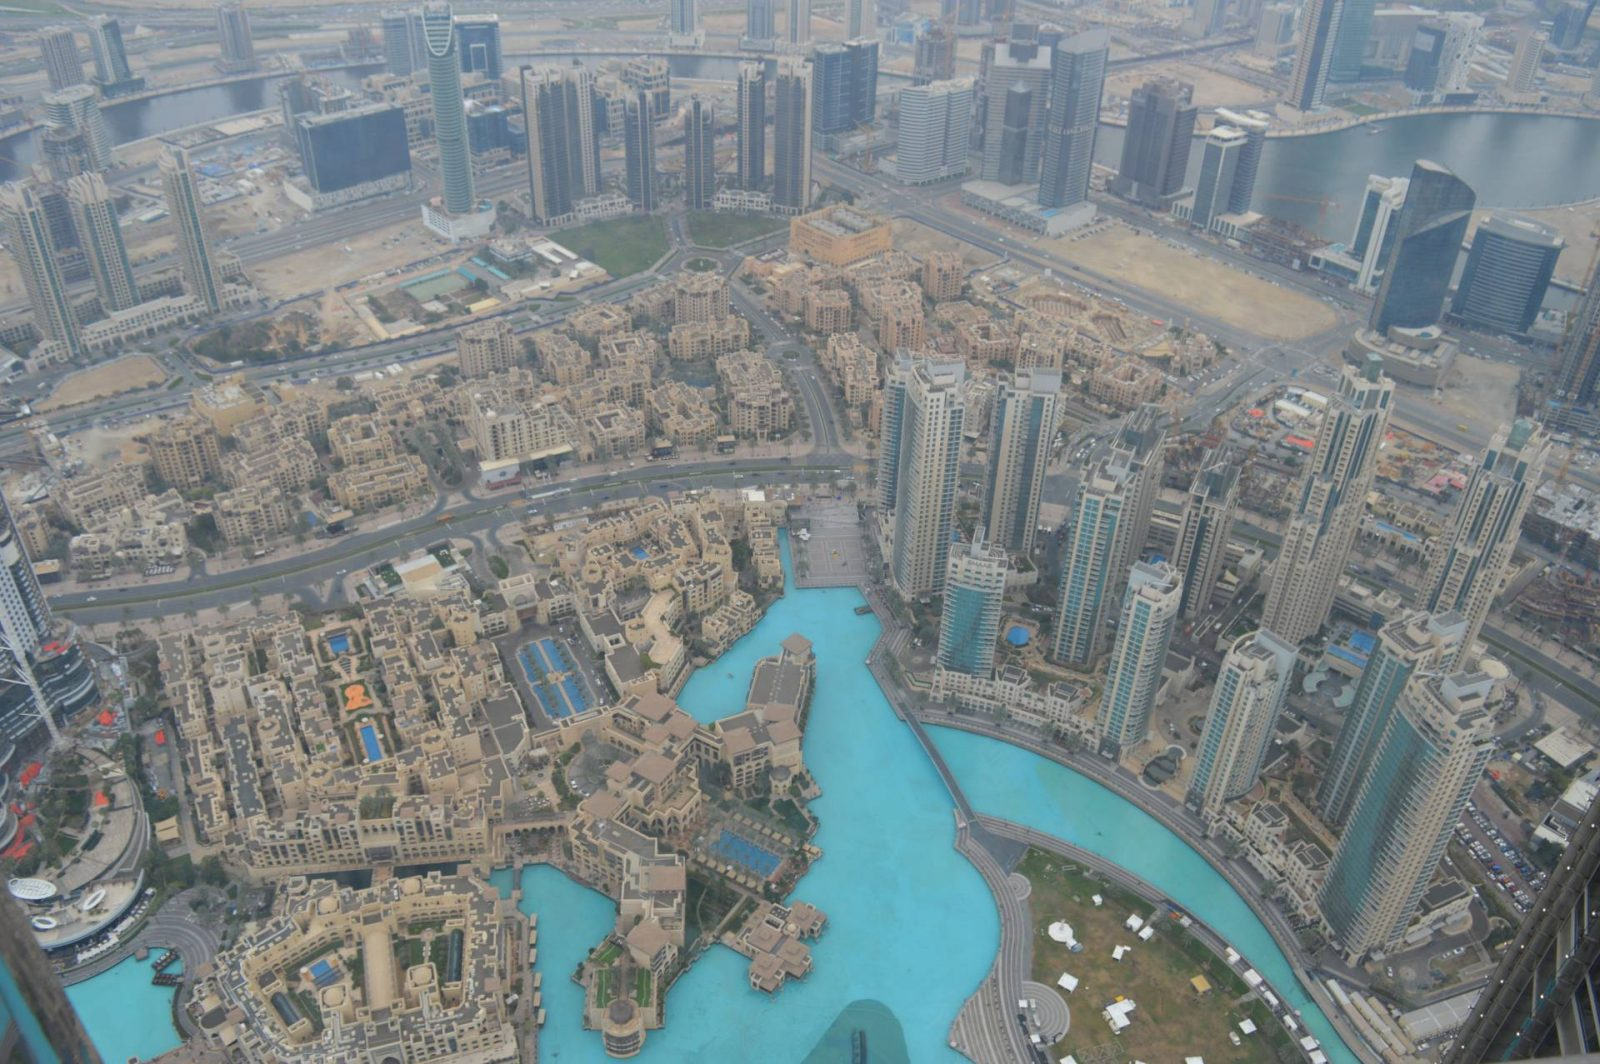 A Day in Dubai - Going Up the Burj Khalifa